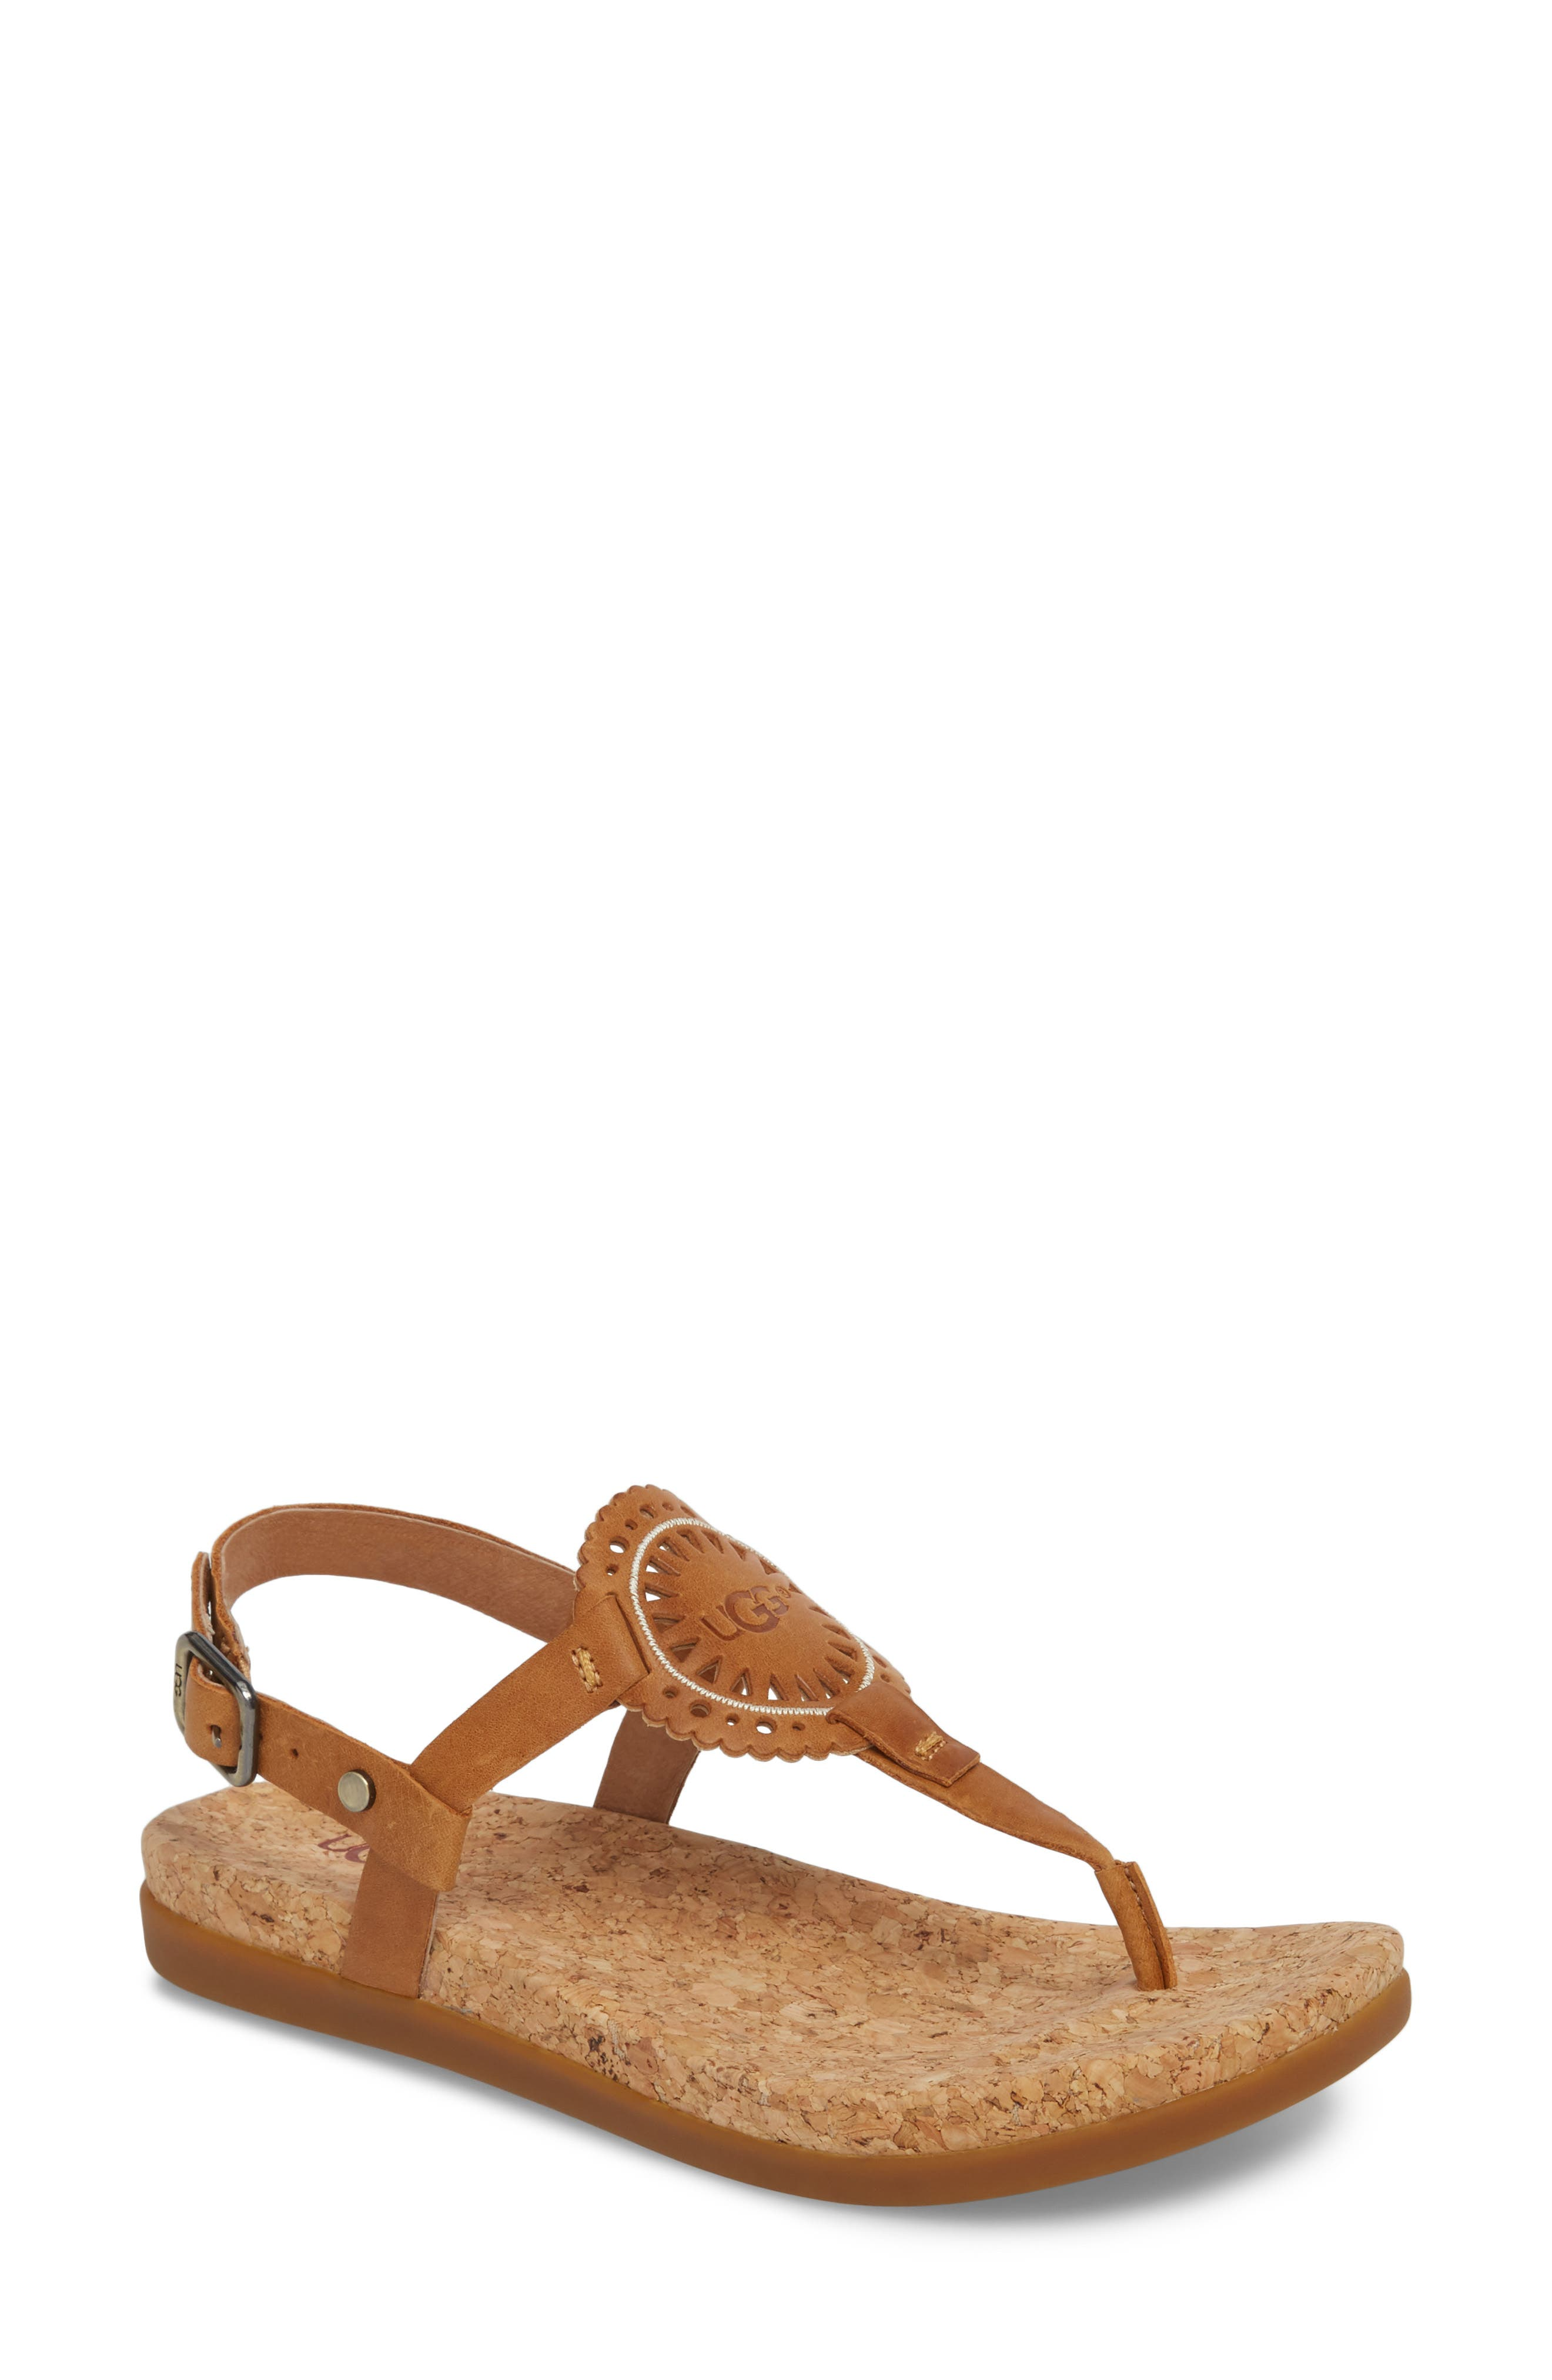 Ayden II T-Strap Sandal,                         Main,                         color, Almond Leather